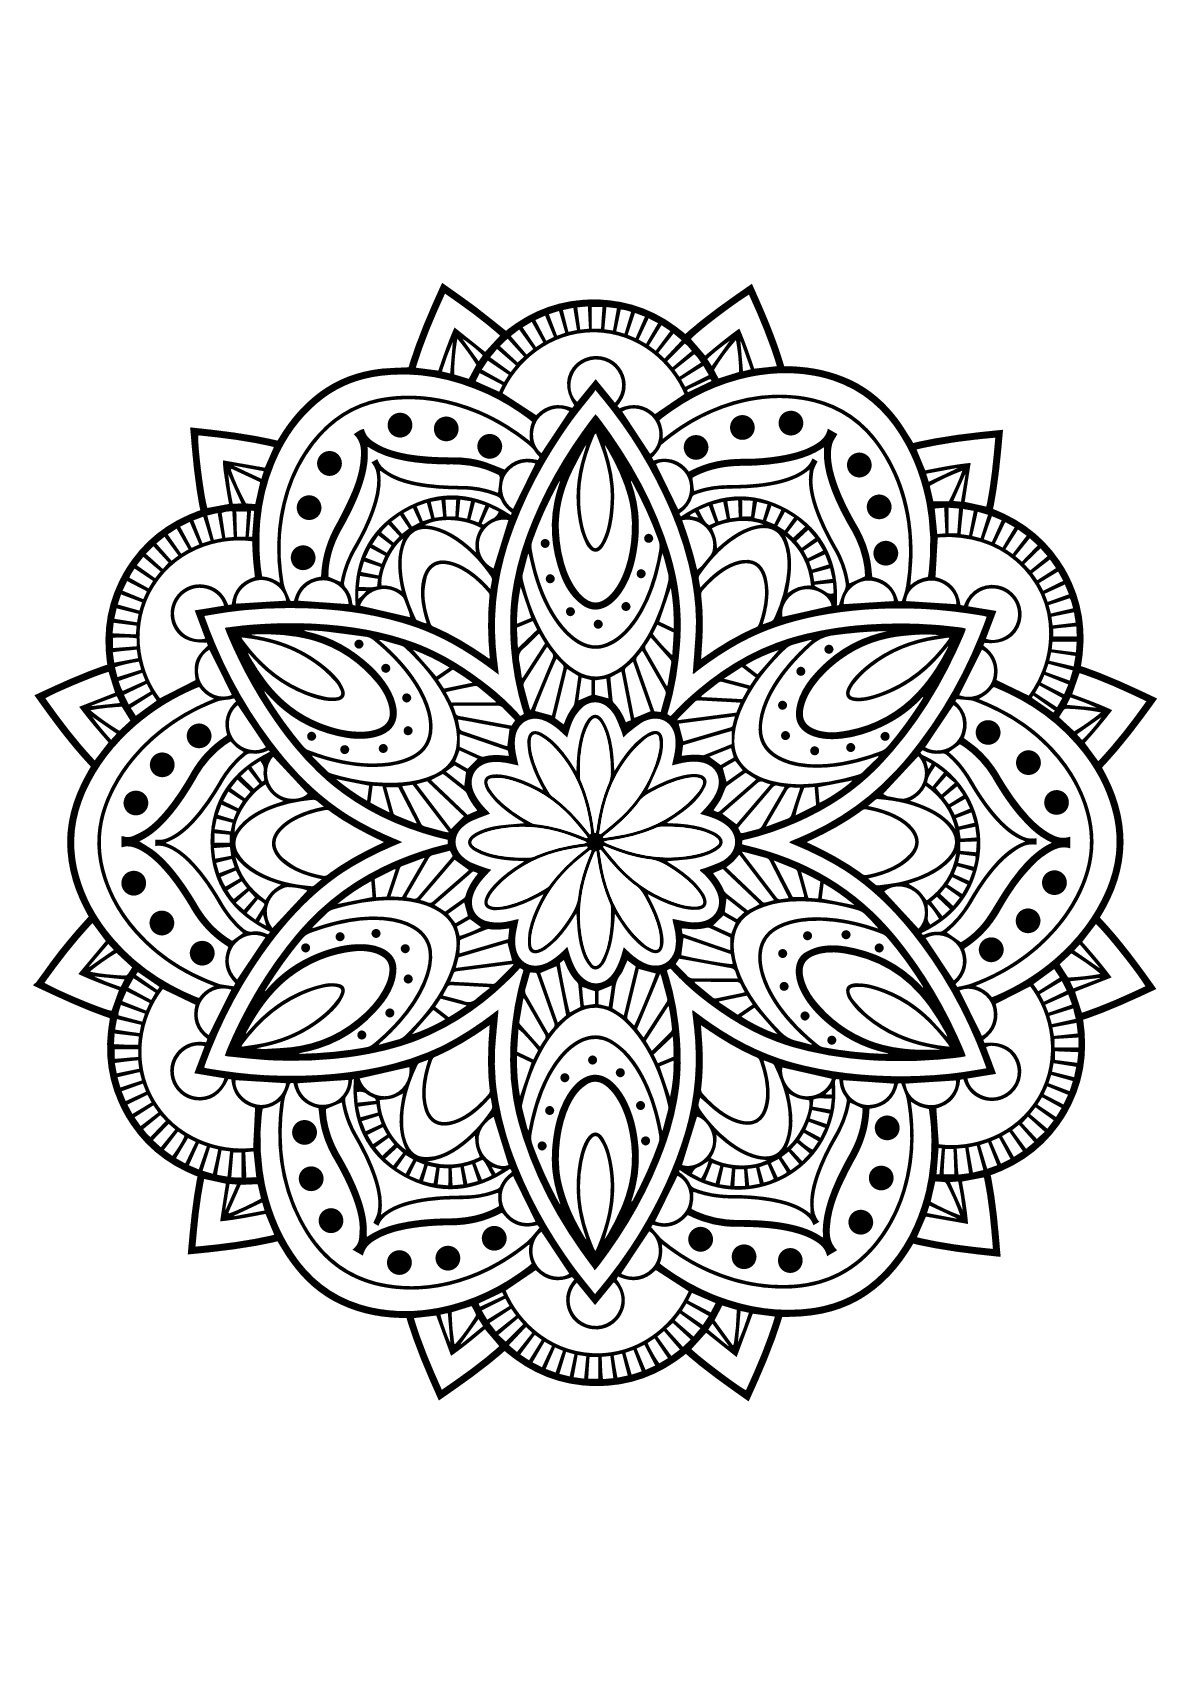 free printable mandalas for adults mandala from free coloring books for adults 13 malas free printable adults for mandalas